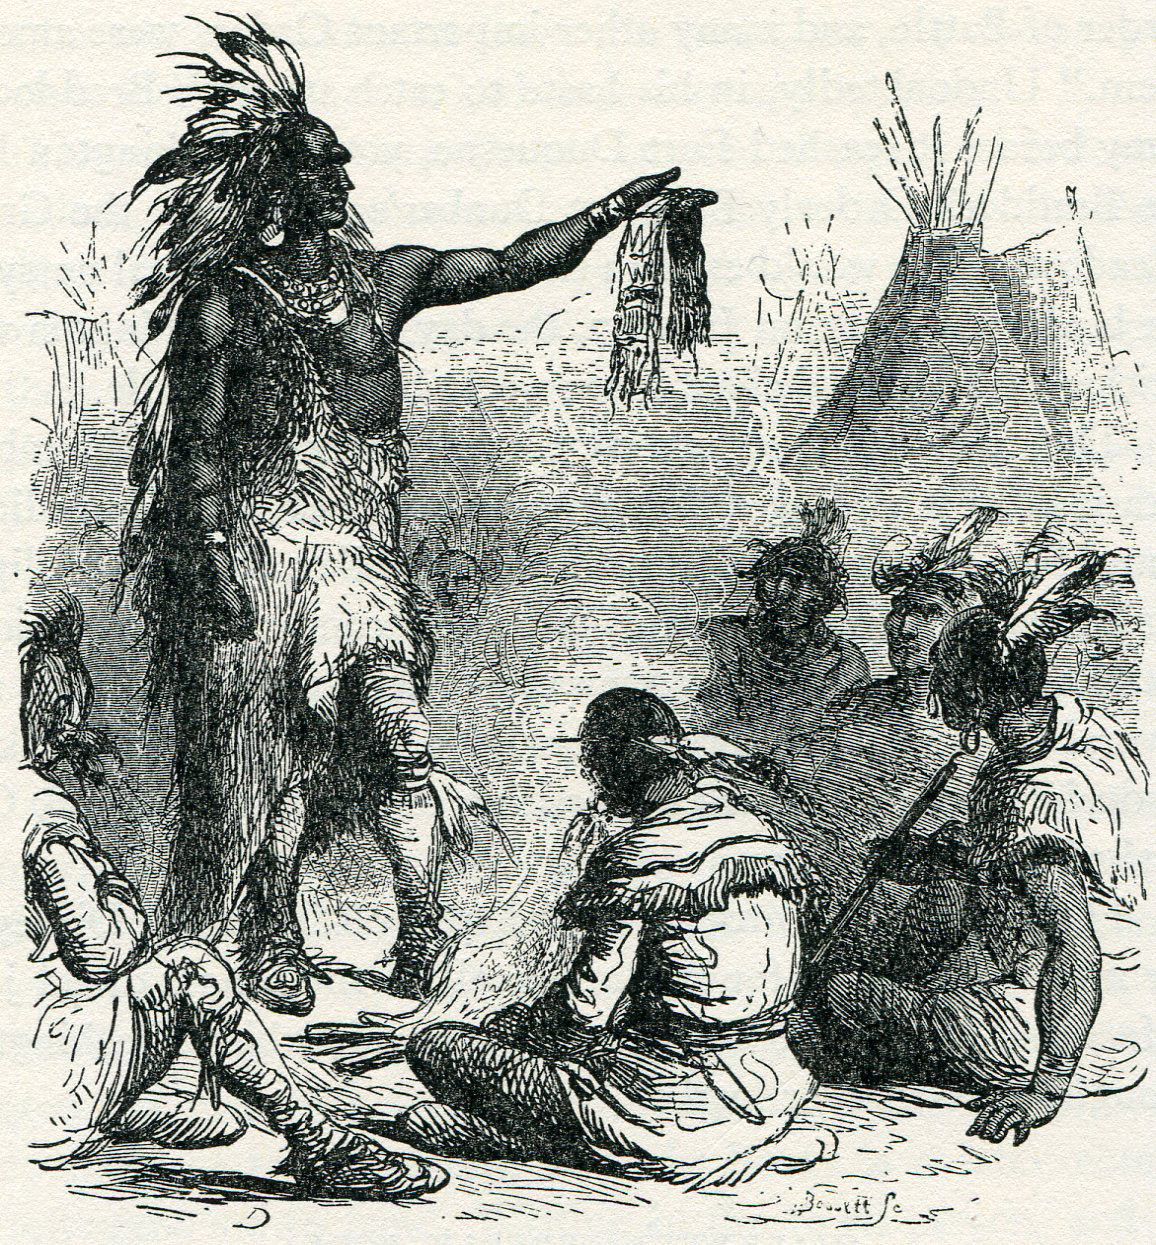 Native Americans in camp at Fort Cumberland in 1755